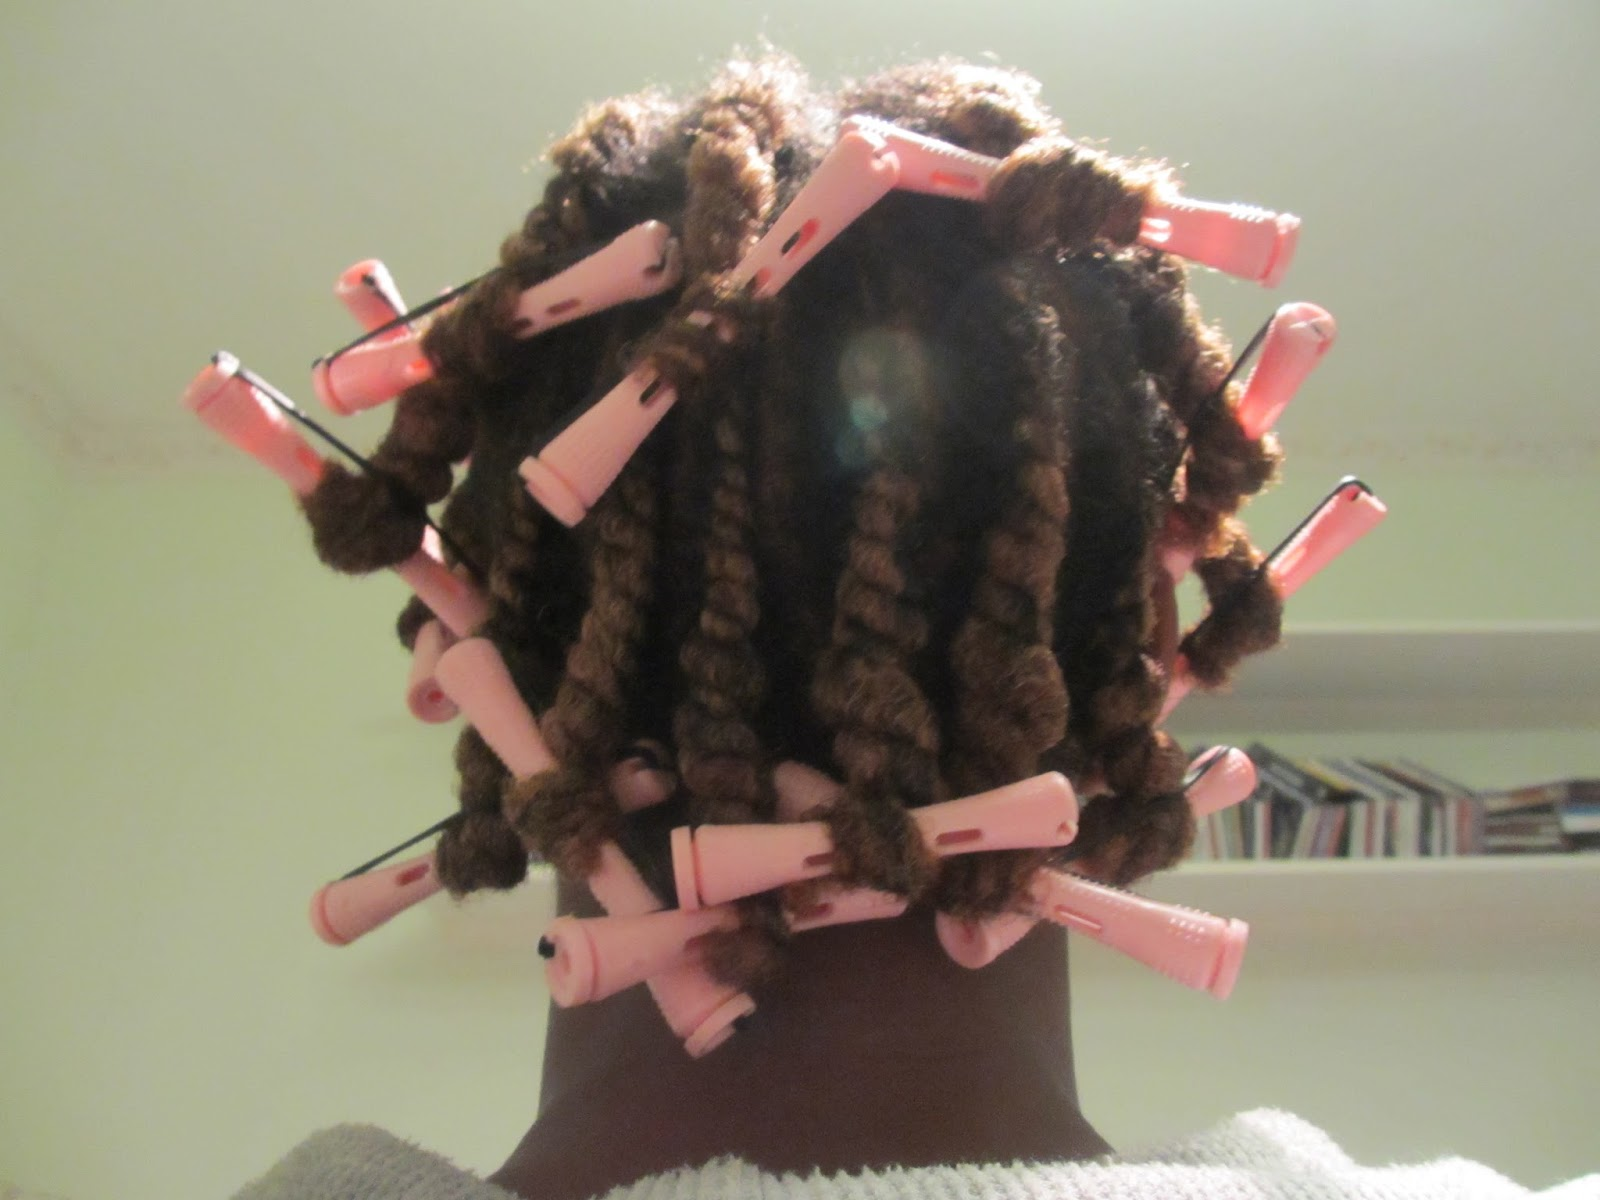 Once the flat twists were done, I added perm rods to the ends to give